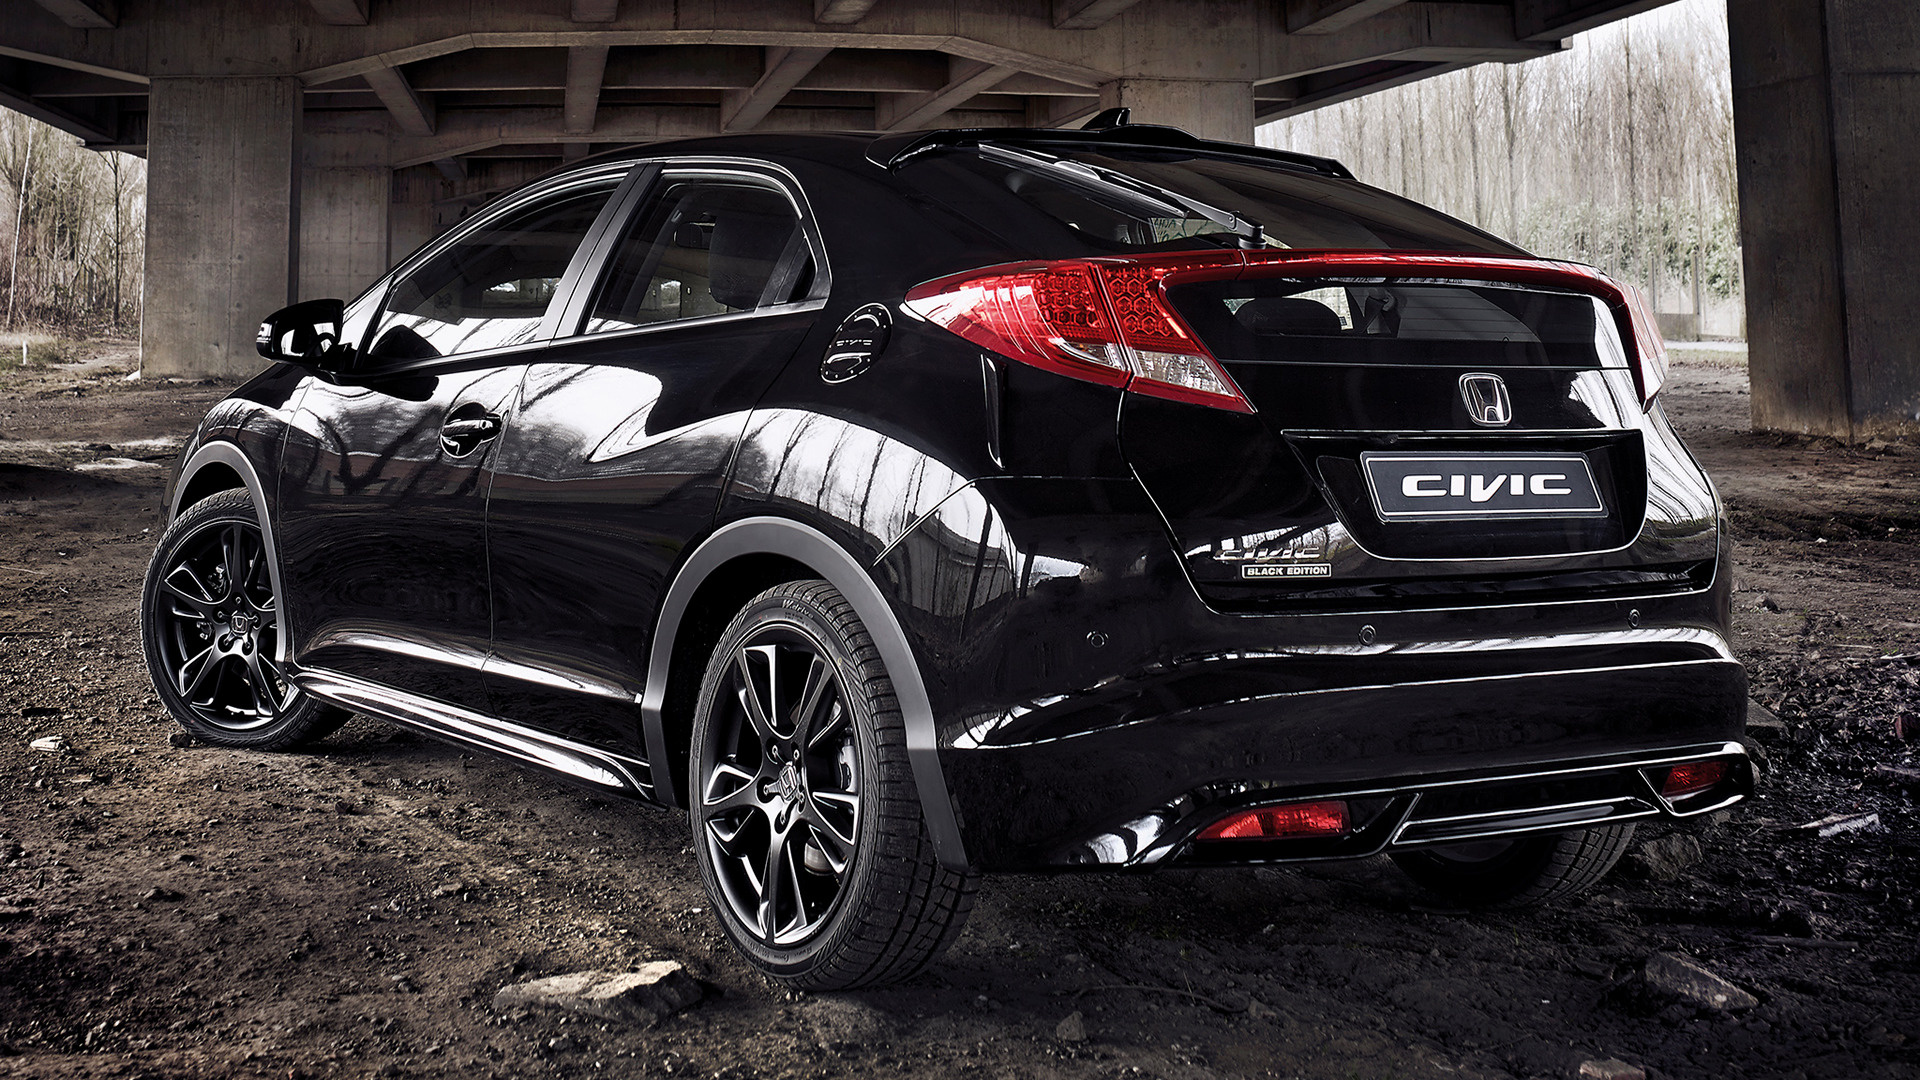 2014 Honda Civic Black Edition Wallpapers And Hd Images